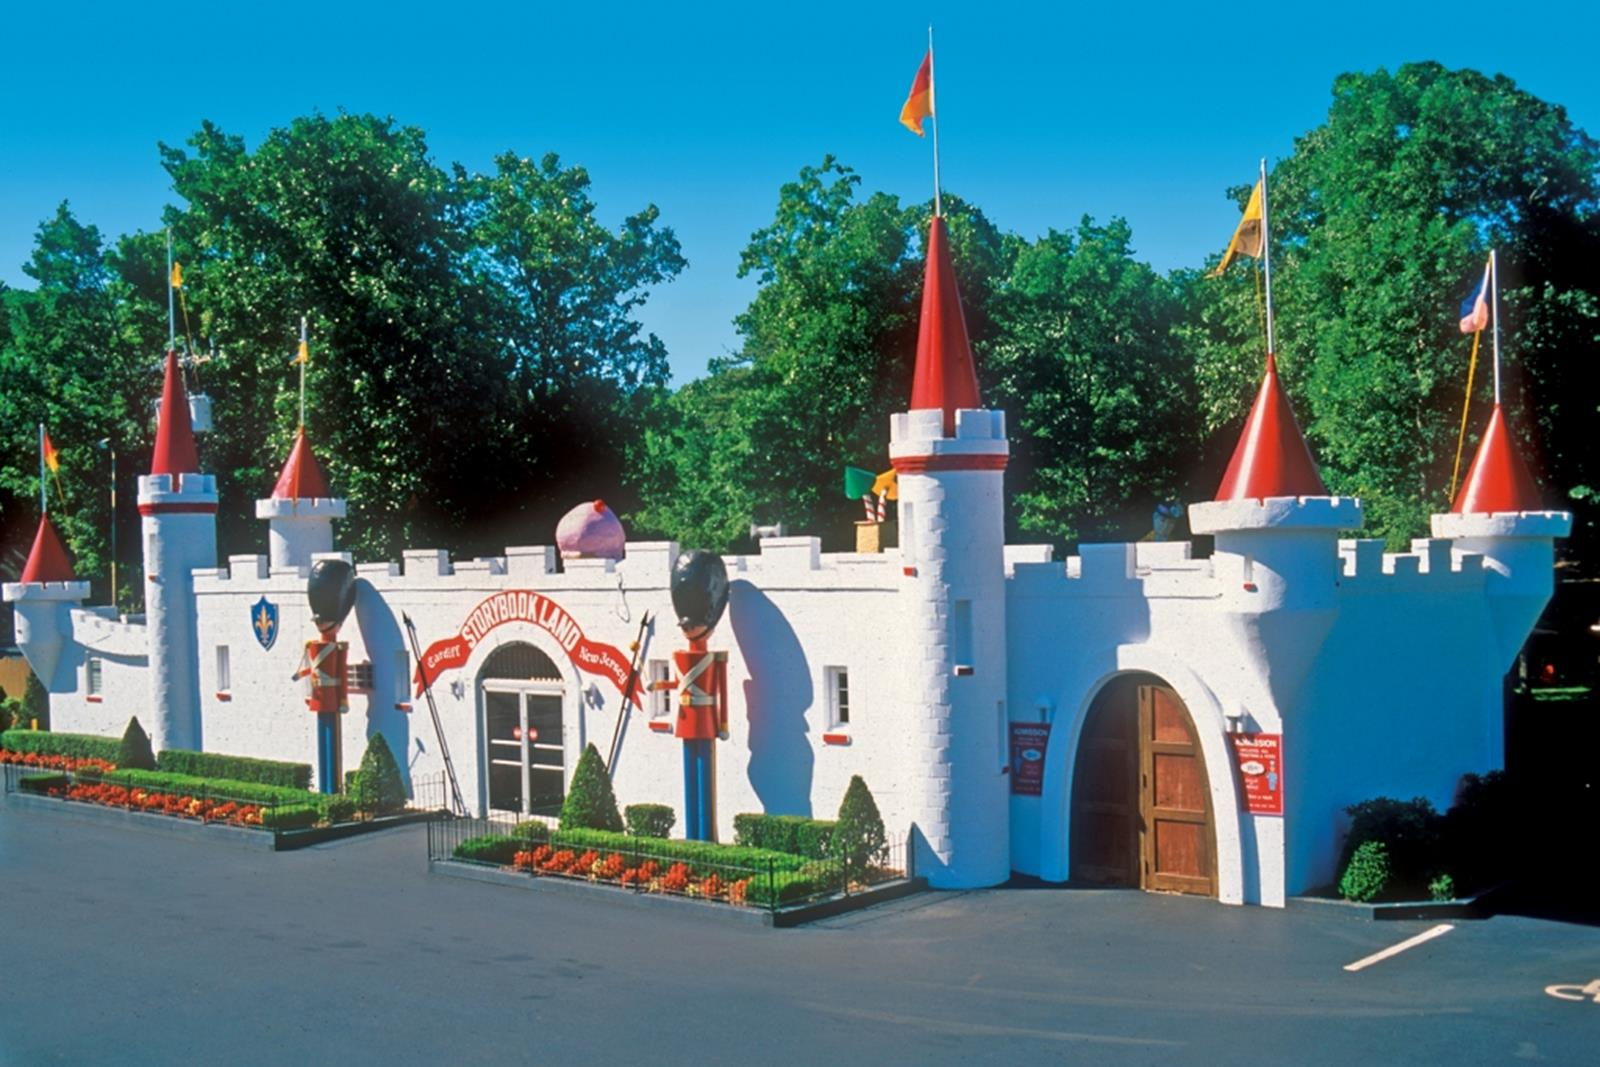 The castle entrance at Storybook Land.